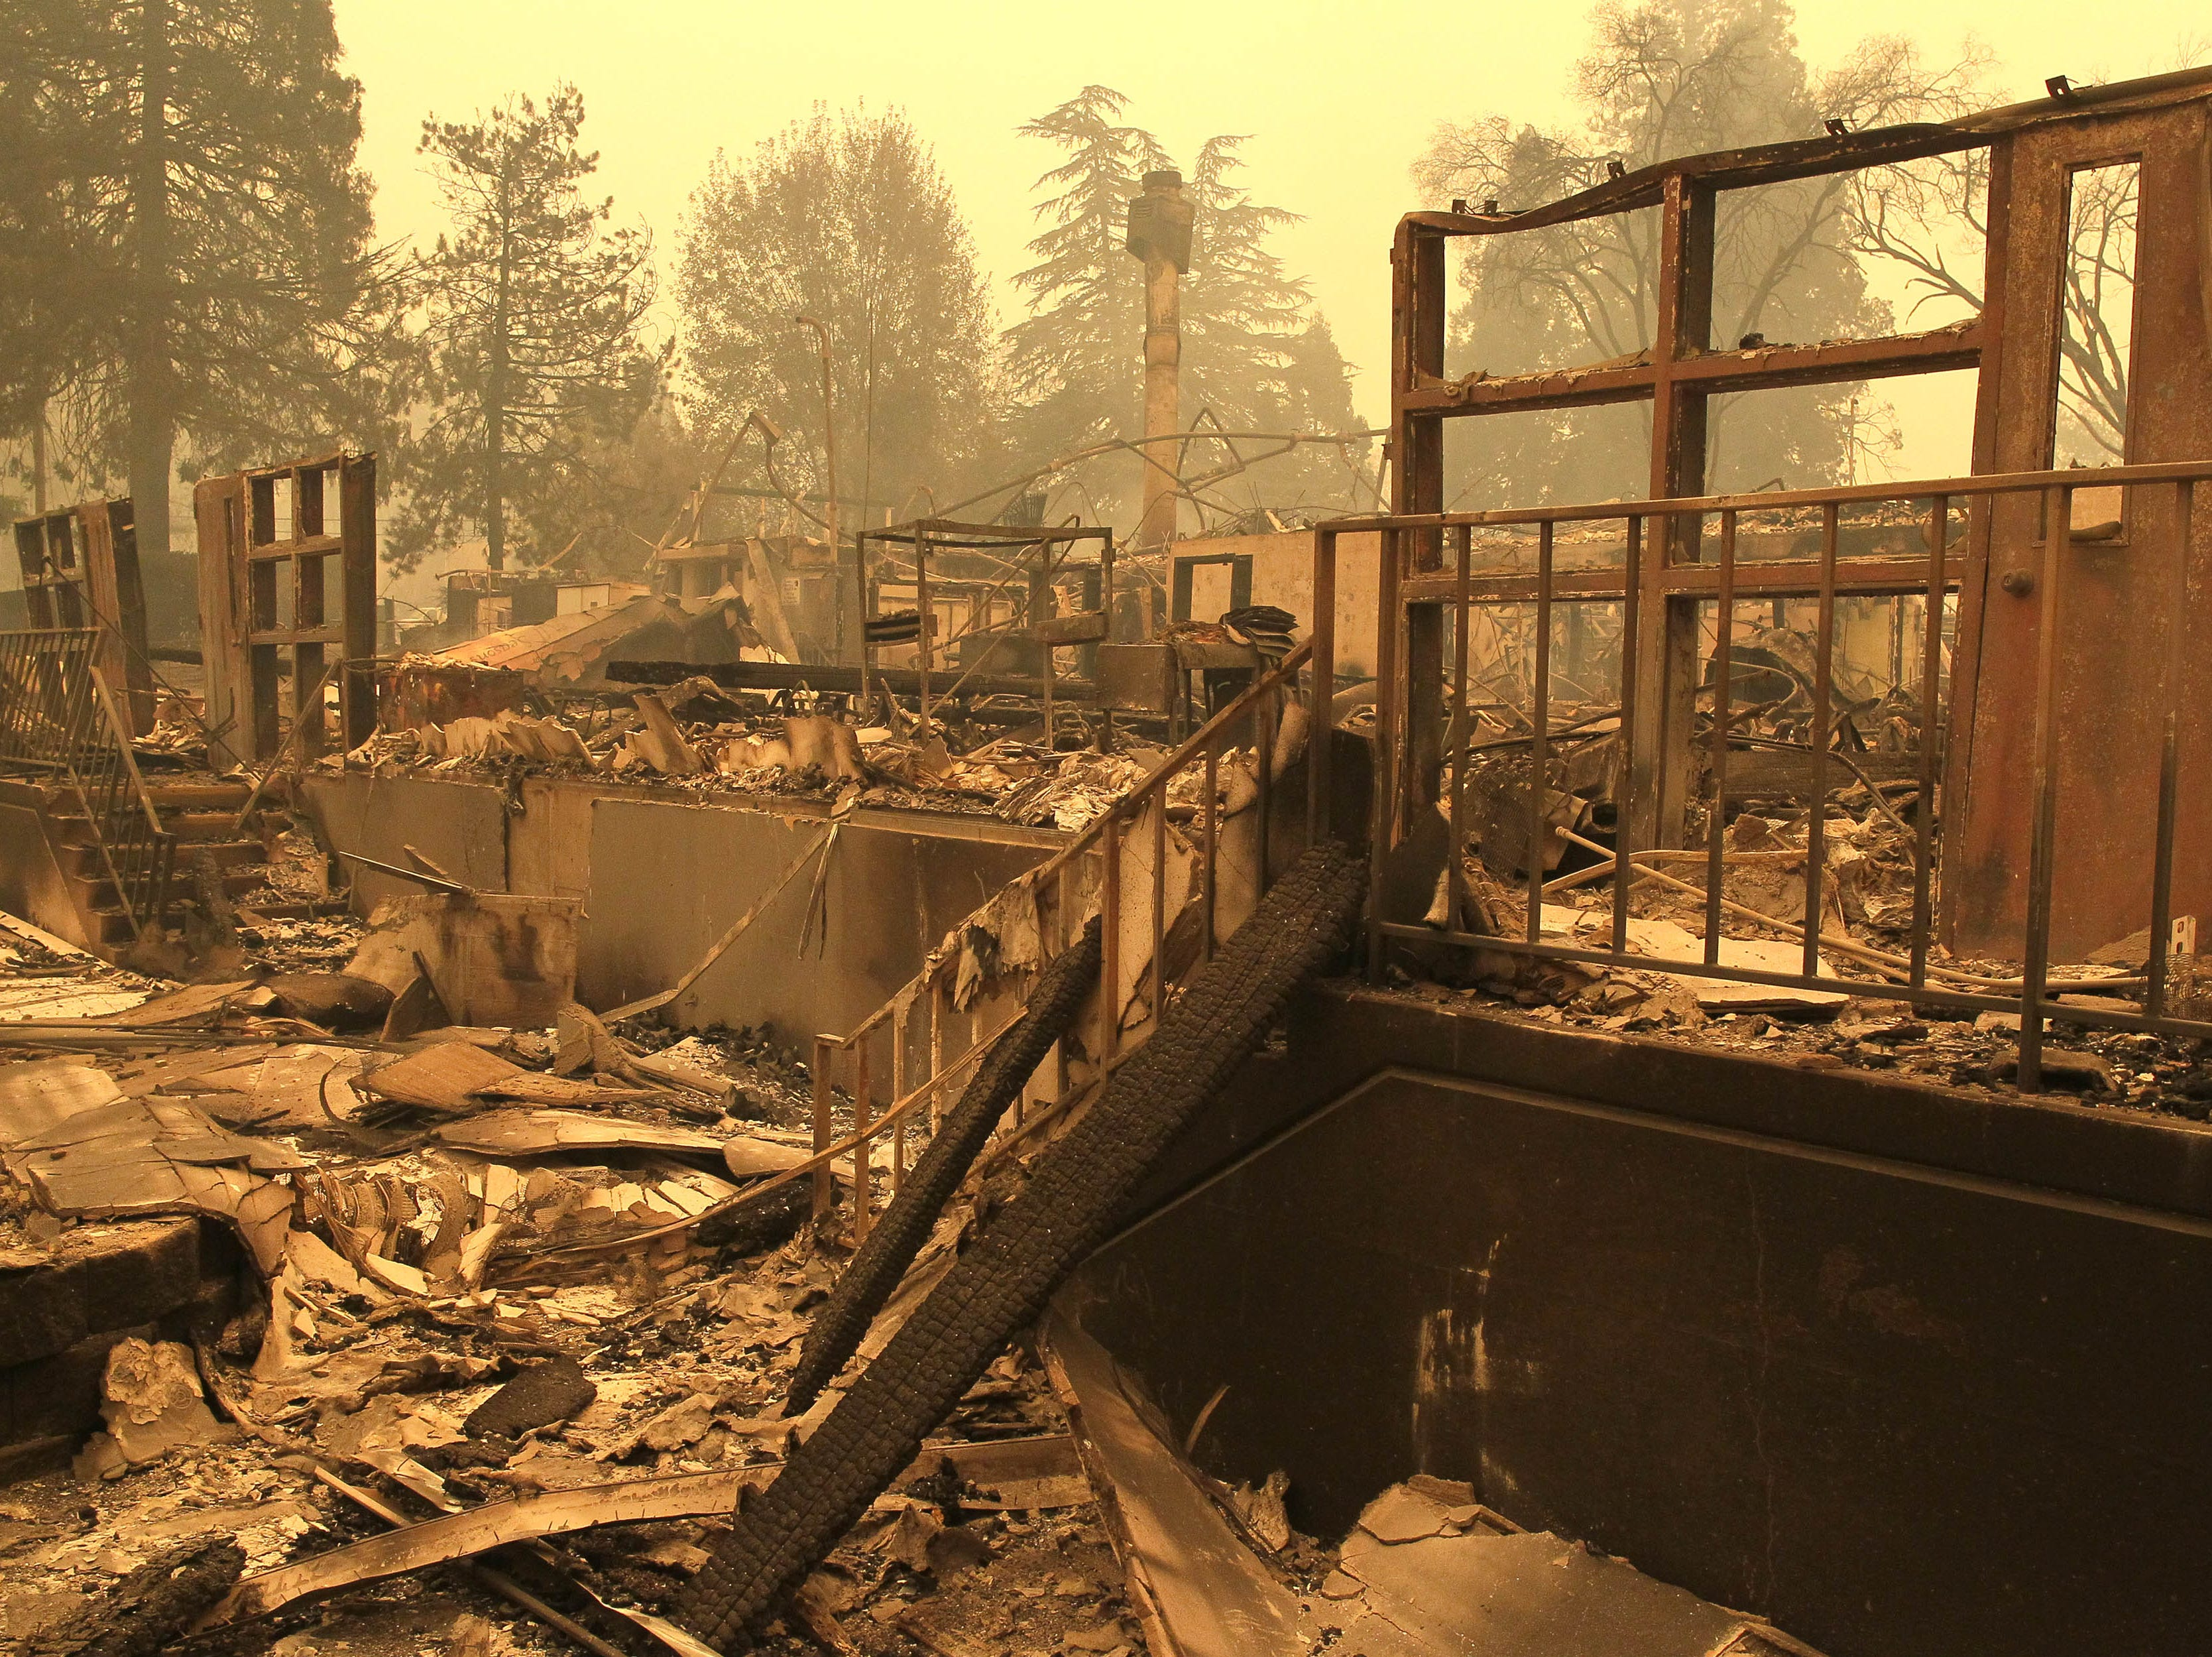 Paradise Elementary School buildings were burned down after the Camp Fire Nov. 9, 2018 in Chico, Calif.